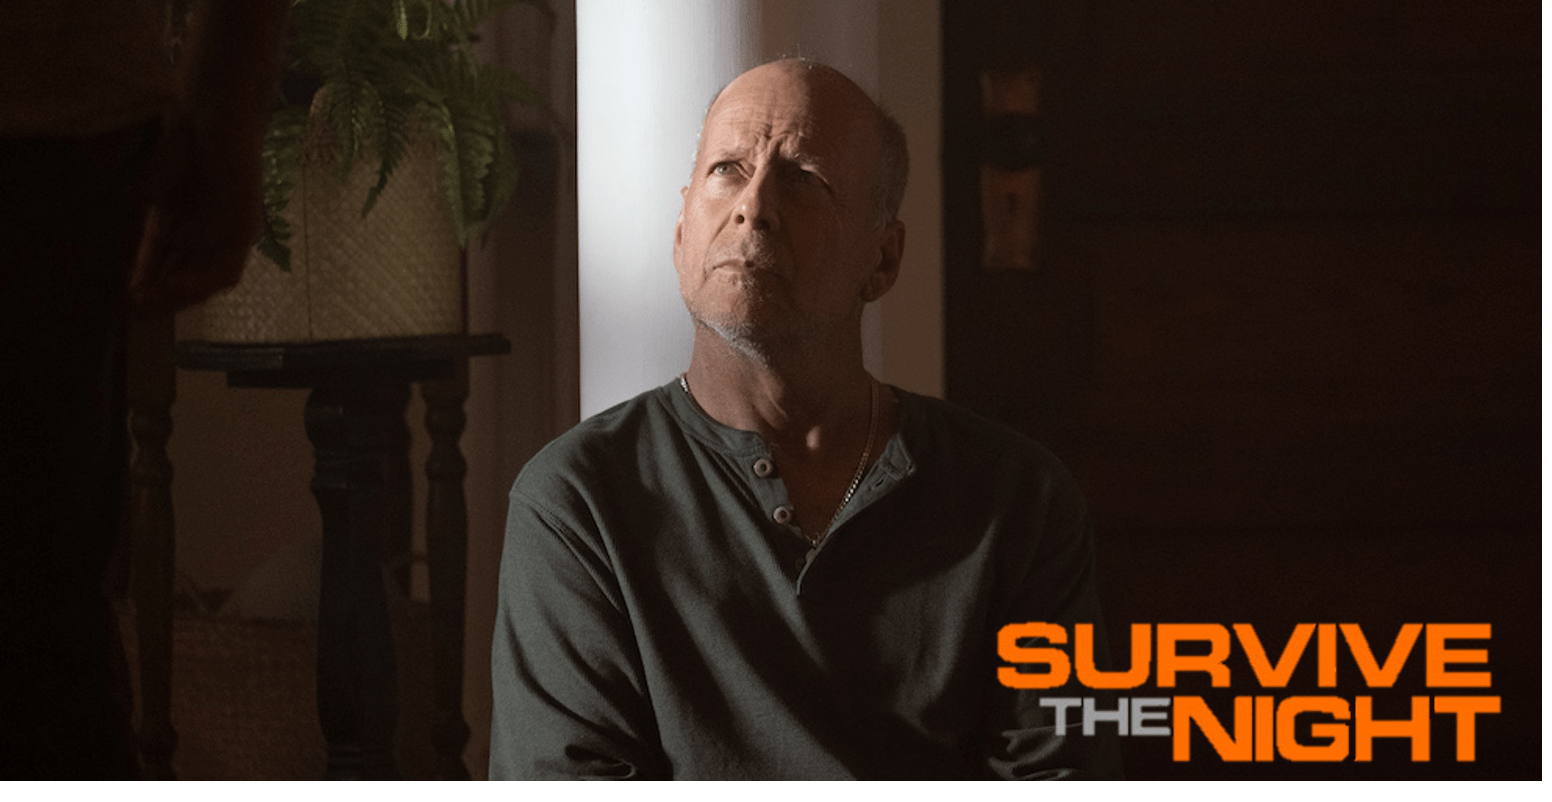 Survive The Night: A Bruce Willis Blunder